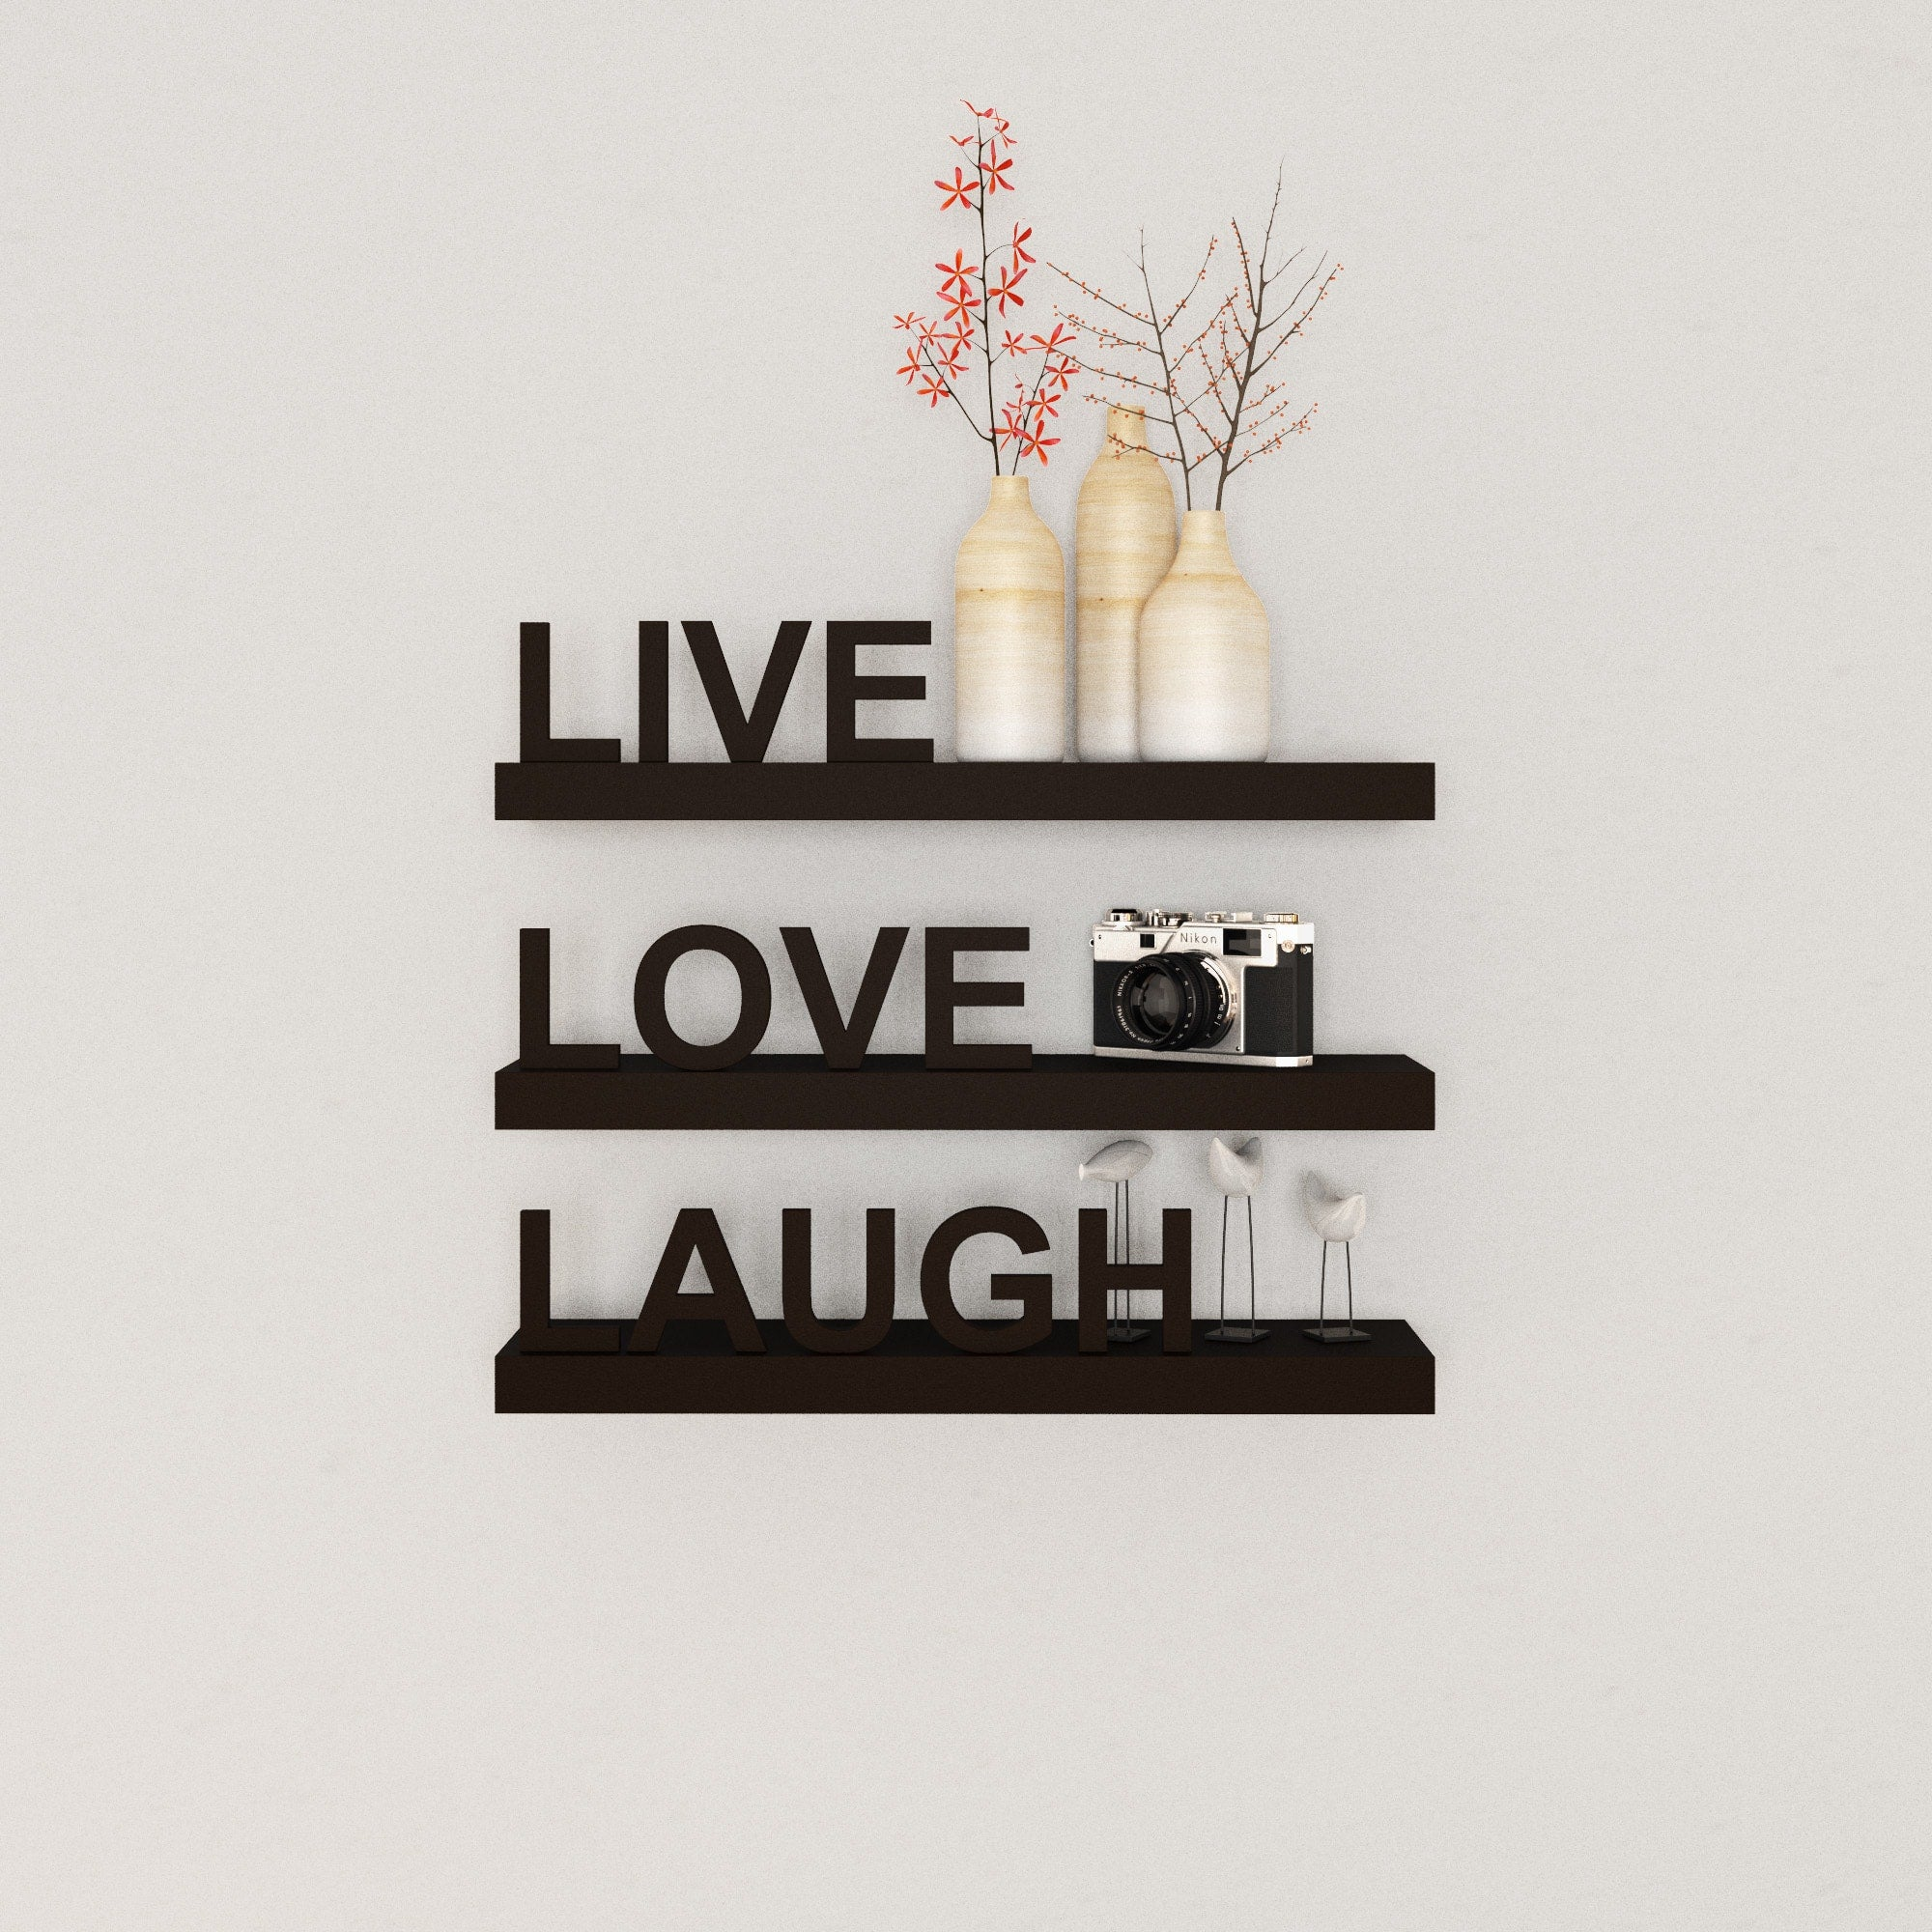 Black Laminate Inspirational Wall Shelves (Set of 3)